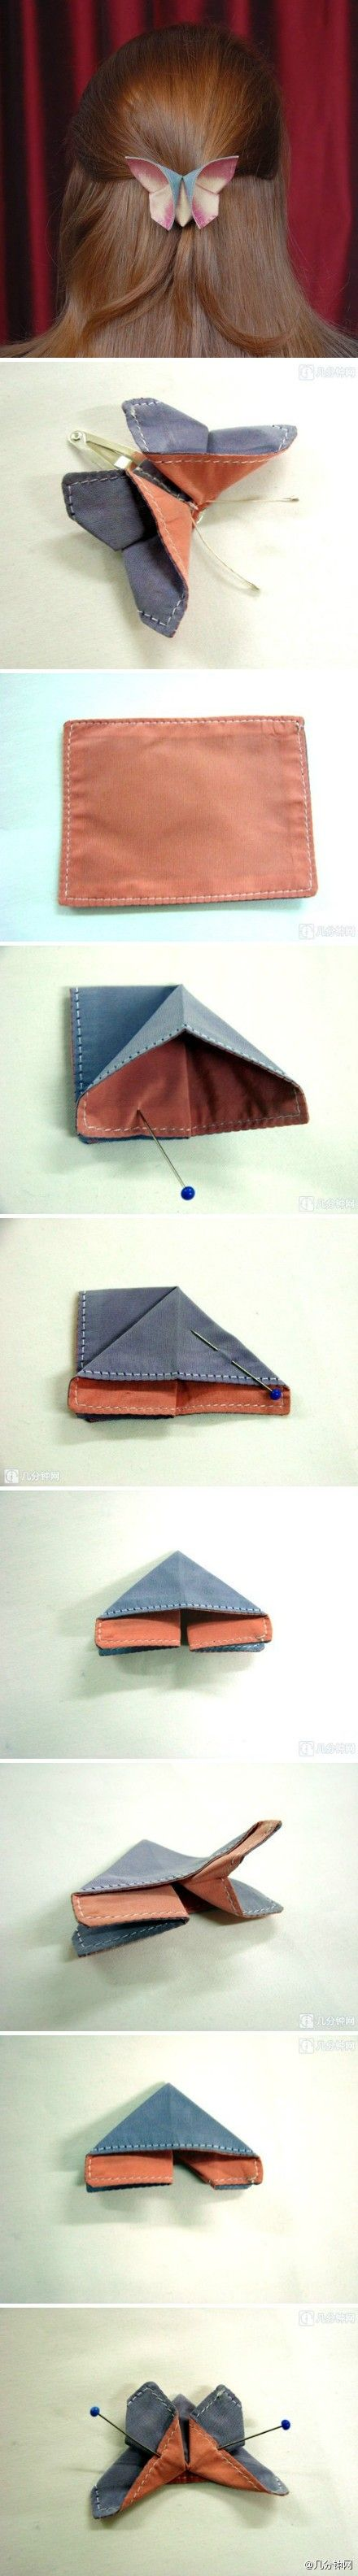 origami Cloth Butterfly Charm how to (I know it isn't a flower, but still could be used for the same types of things)